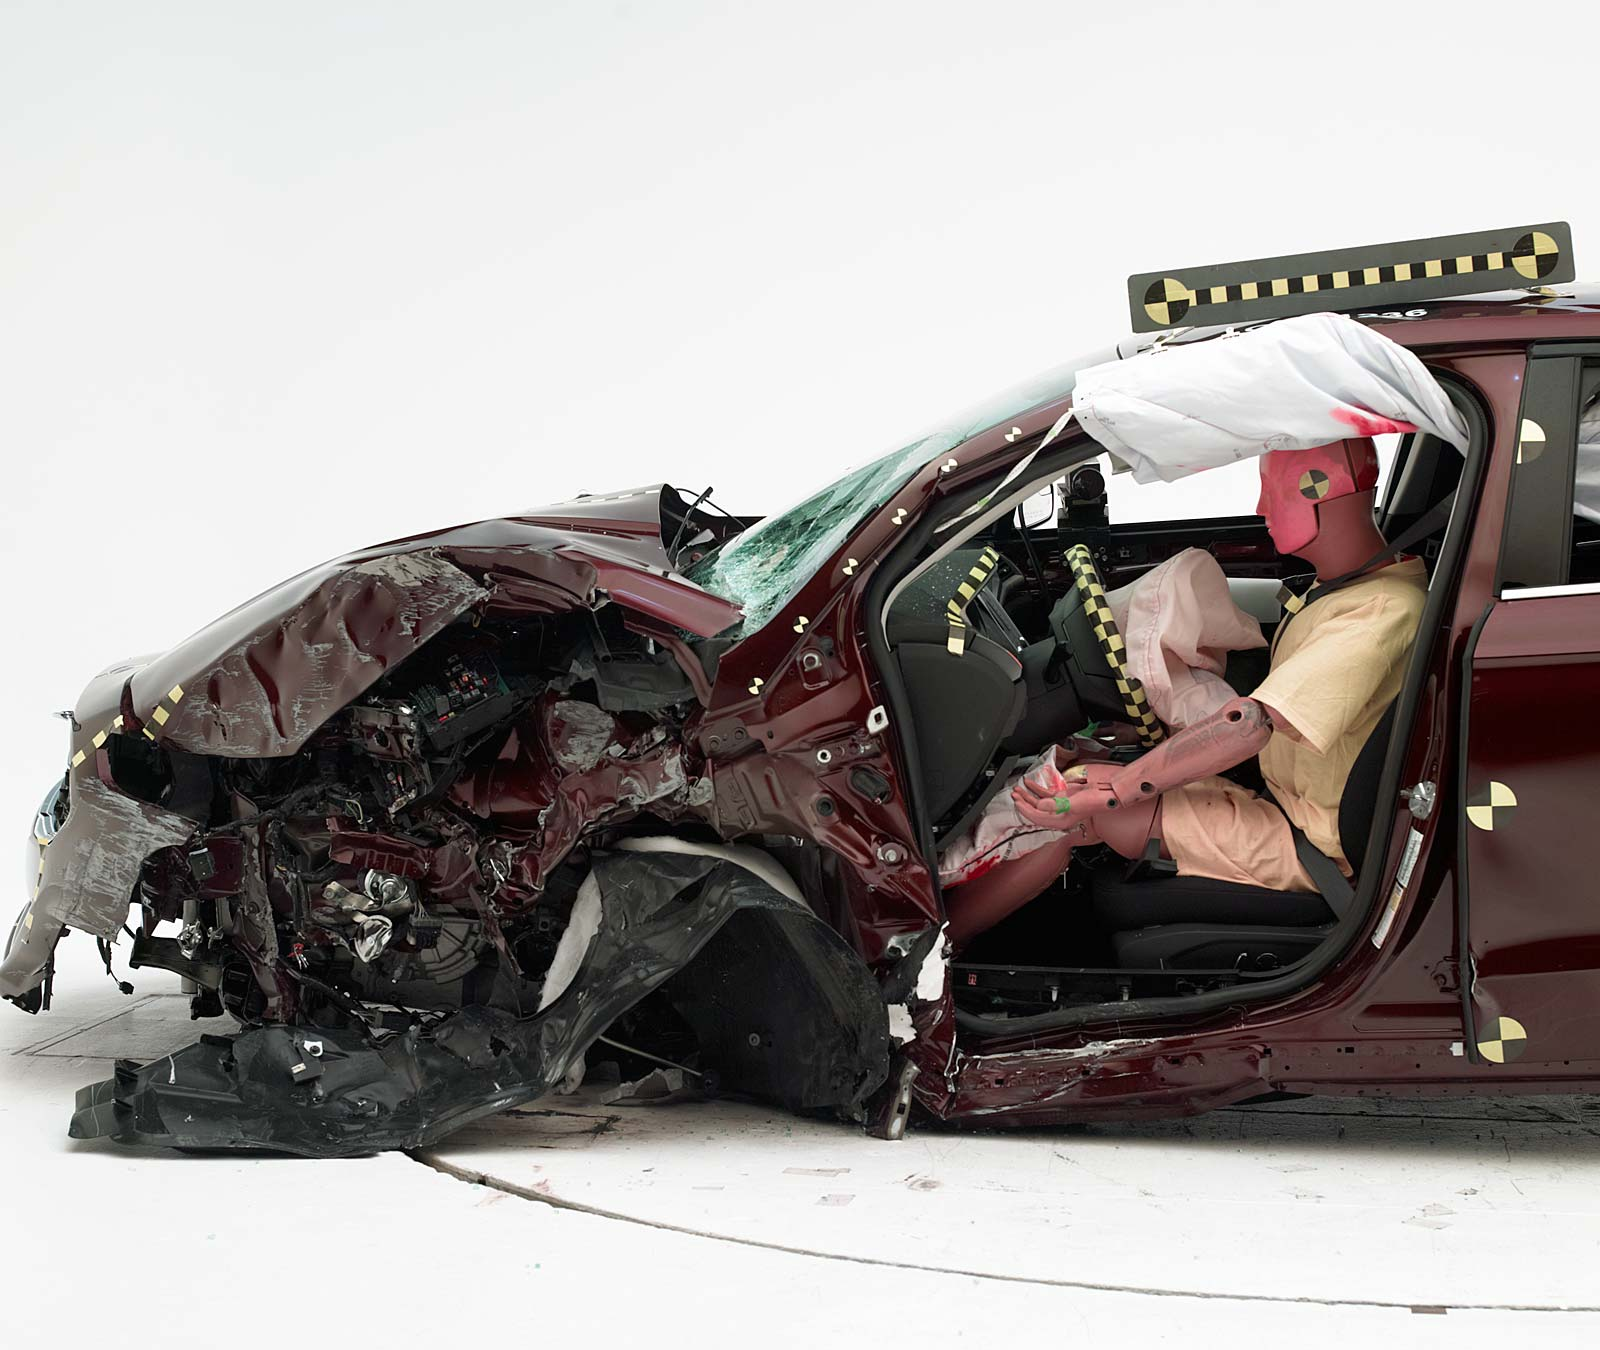 The Dummy S Position In Relation To Door Frame Steering Wheel And Instrument Panel After Crash Test Indicates That Driver Survival E Was